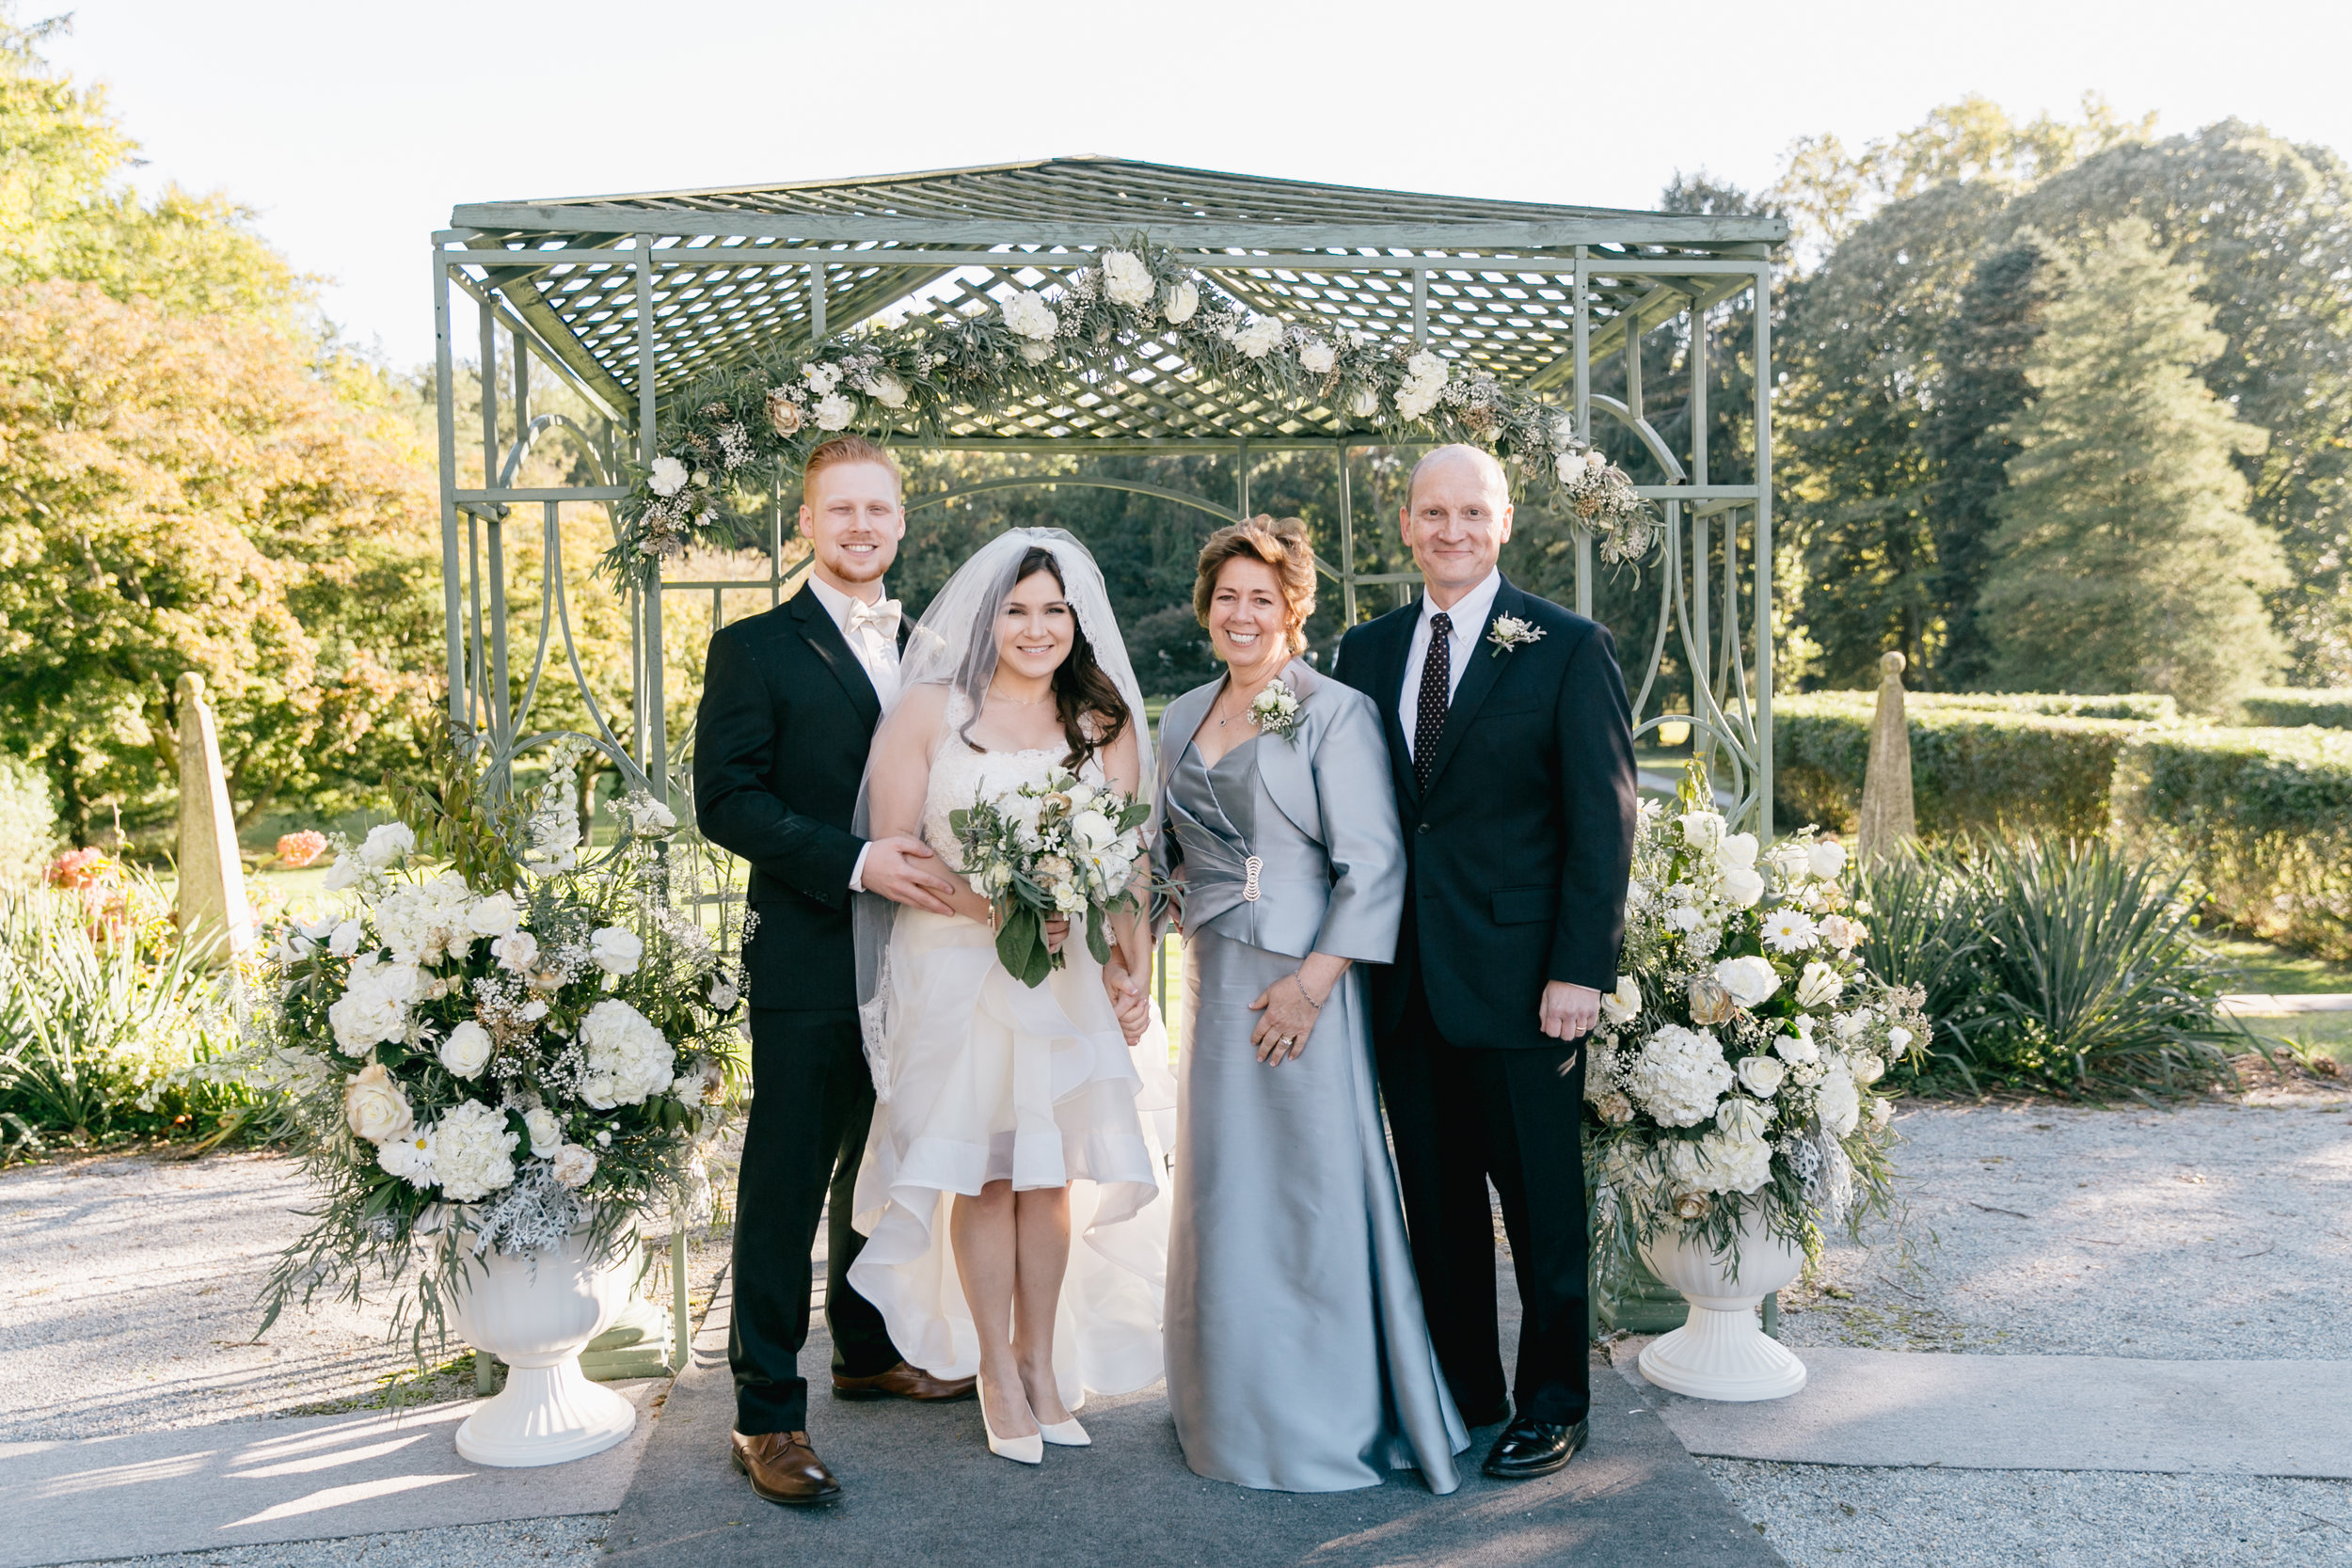 The arbor is one of our favorite pieces to work with at Greystone, and the large altarpiece arrangements are a tasteful way to frame the ceremony.